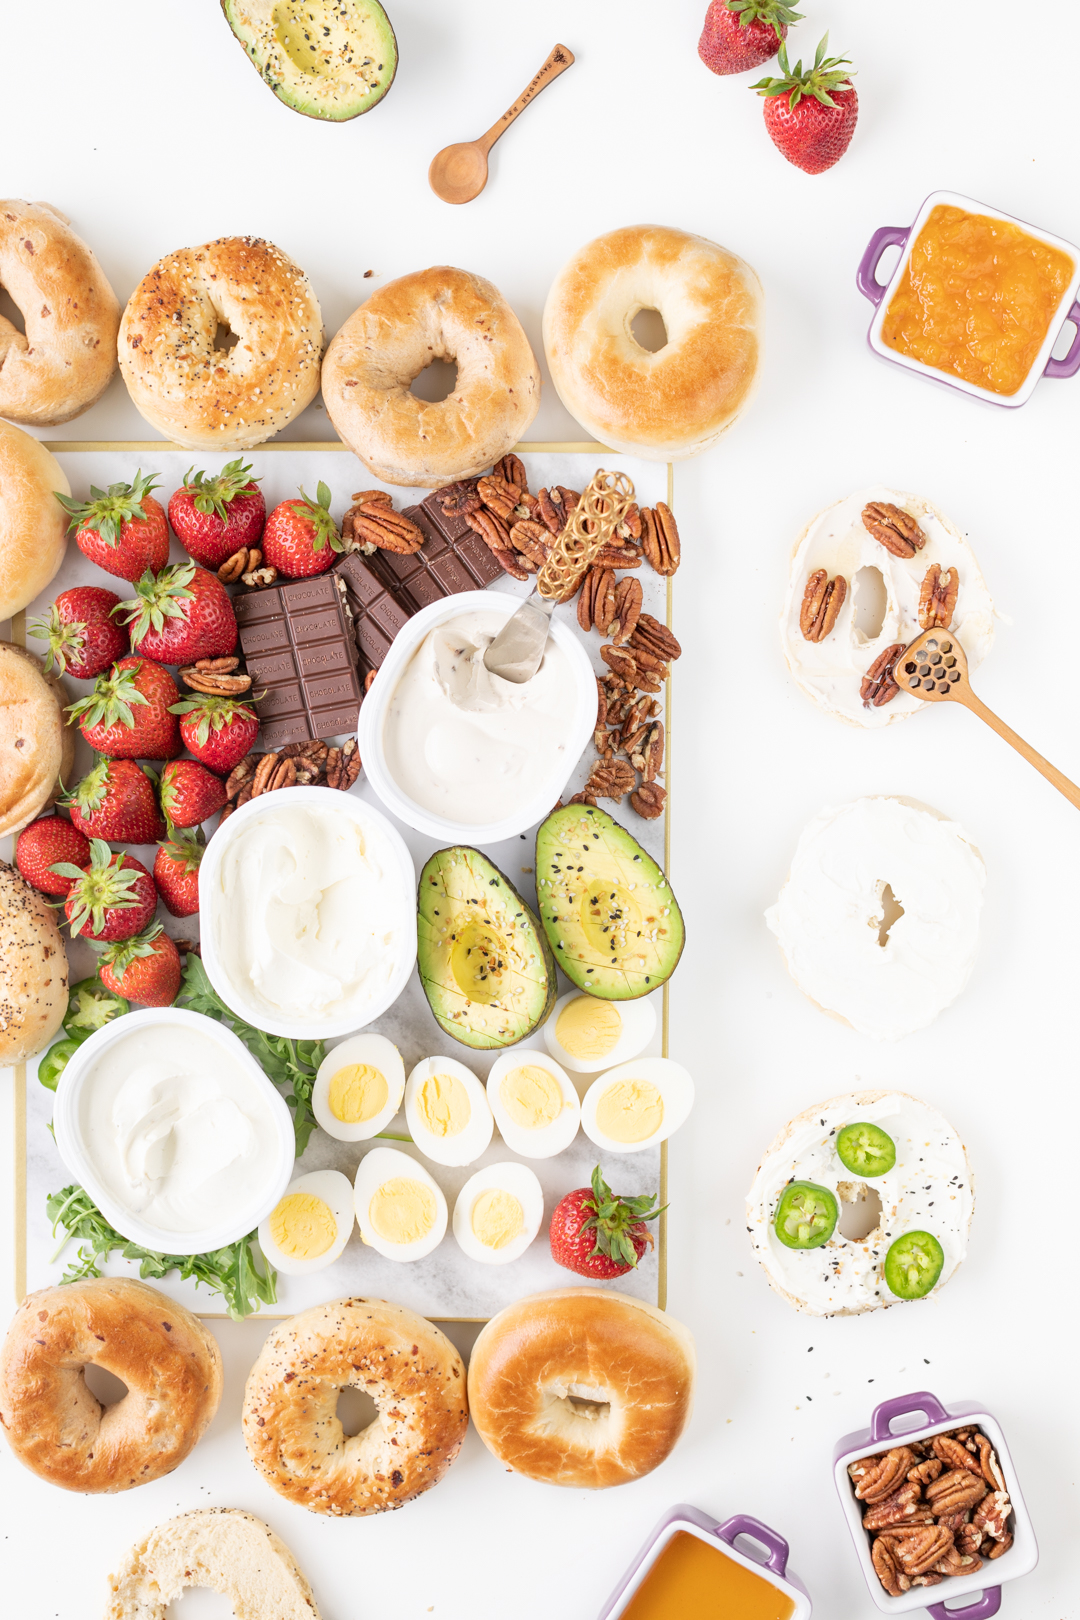 Brunch board with bagels, cream cheese and more delicious toppings.